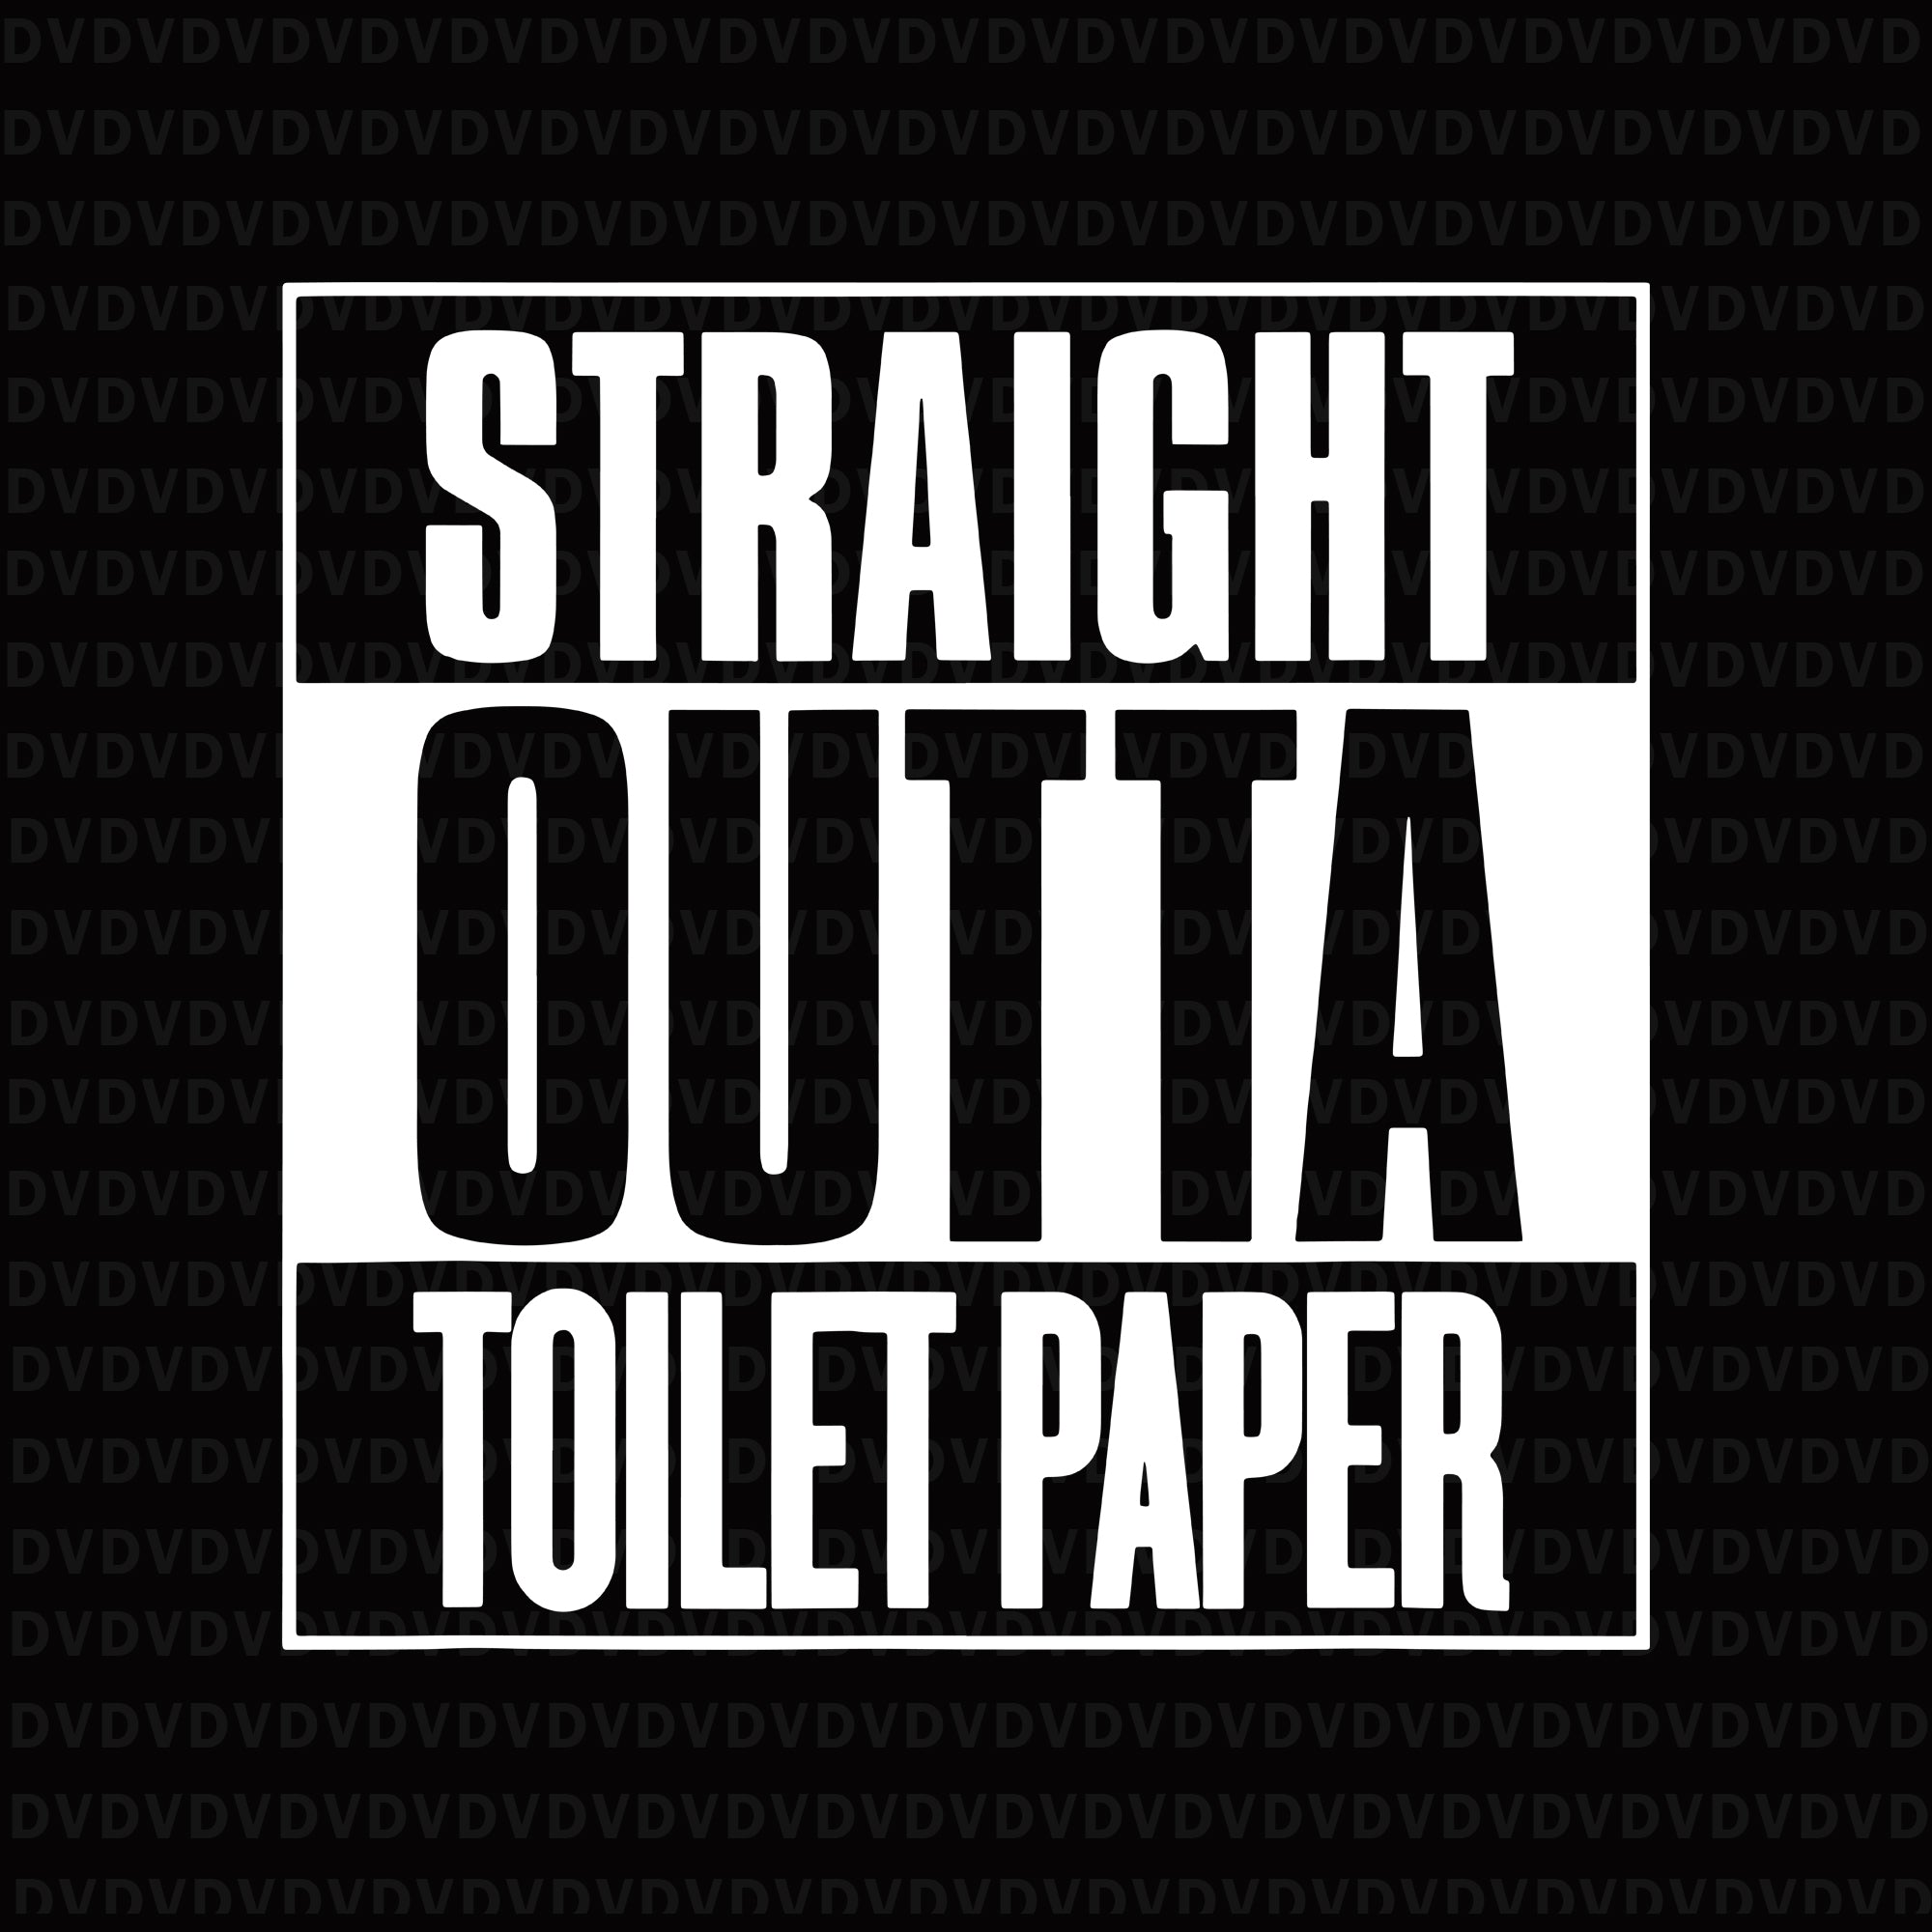 Straight outta toilet paper svg, straight outta toilet paper, straight outta toilet paper png, straight outta toilet paper